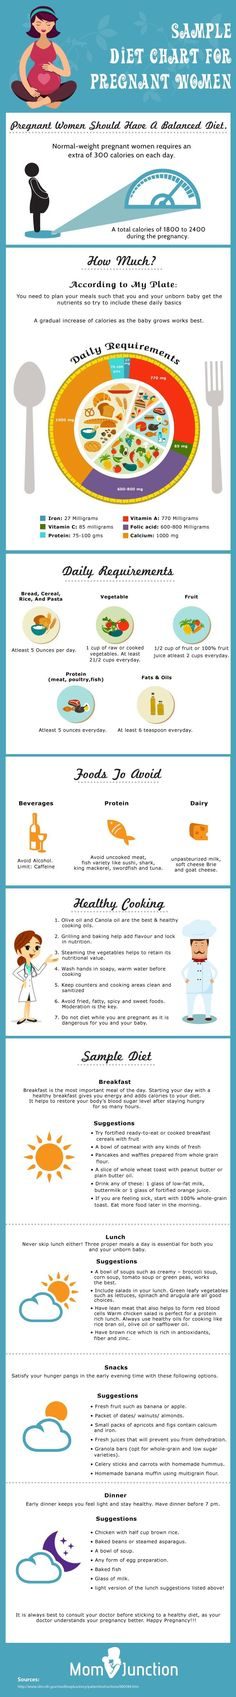 Post Pregnancy Diet Chart For Weight Loss Weight Loss Nutrition